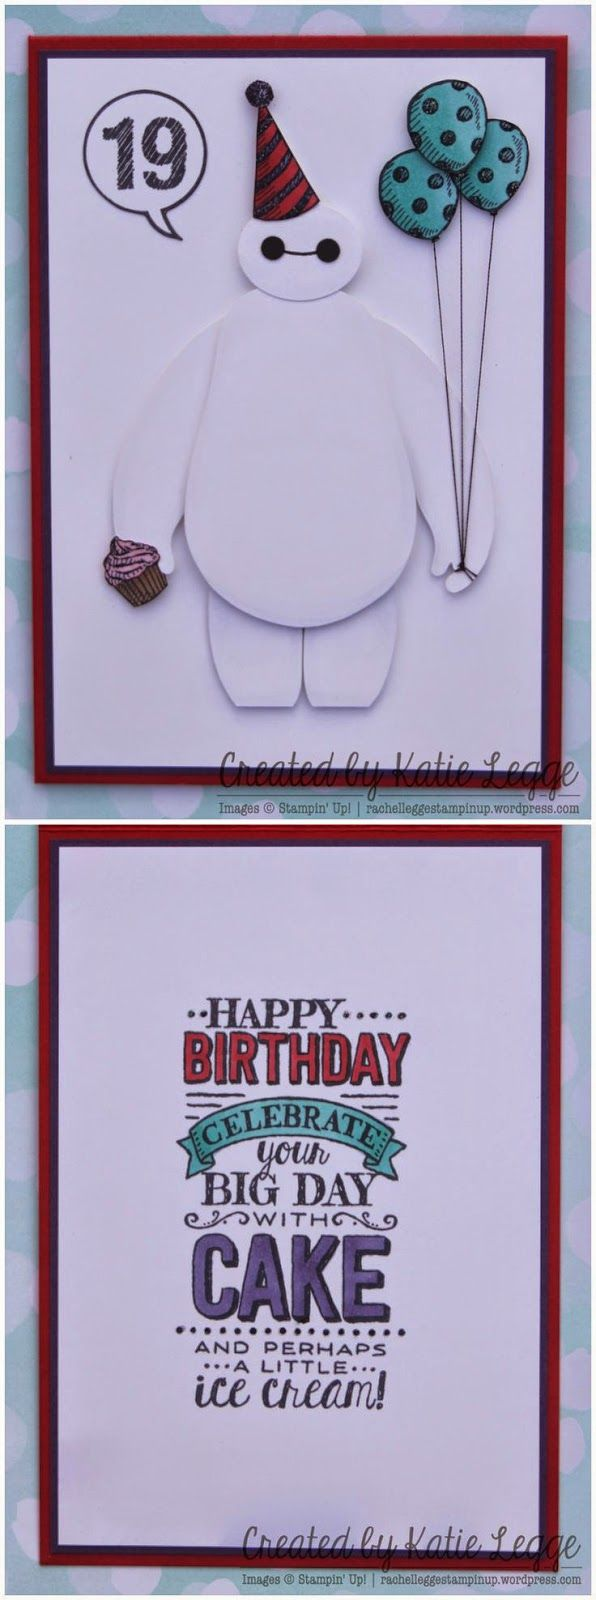 2832 Best Cards Birthday Images On Pinterest Birthdays Handmade